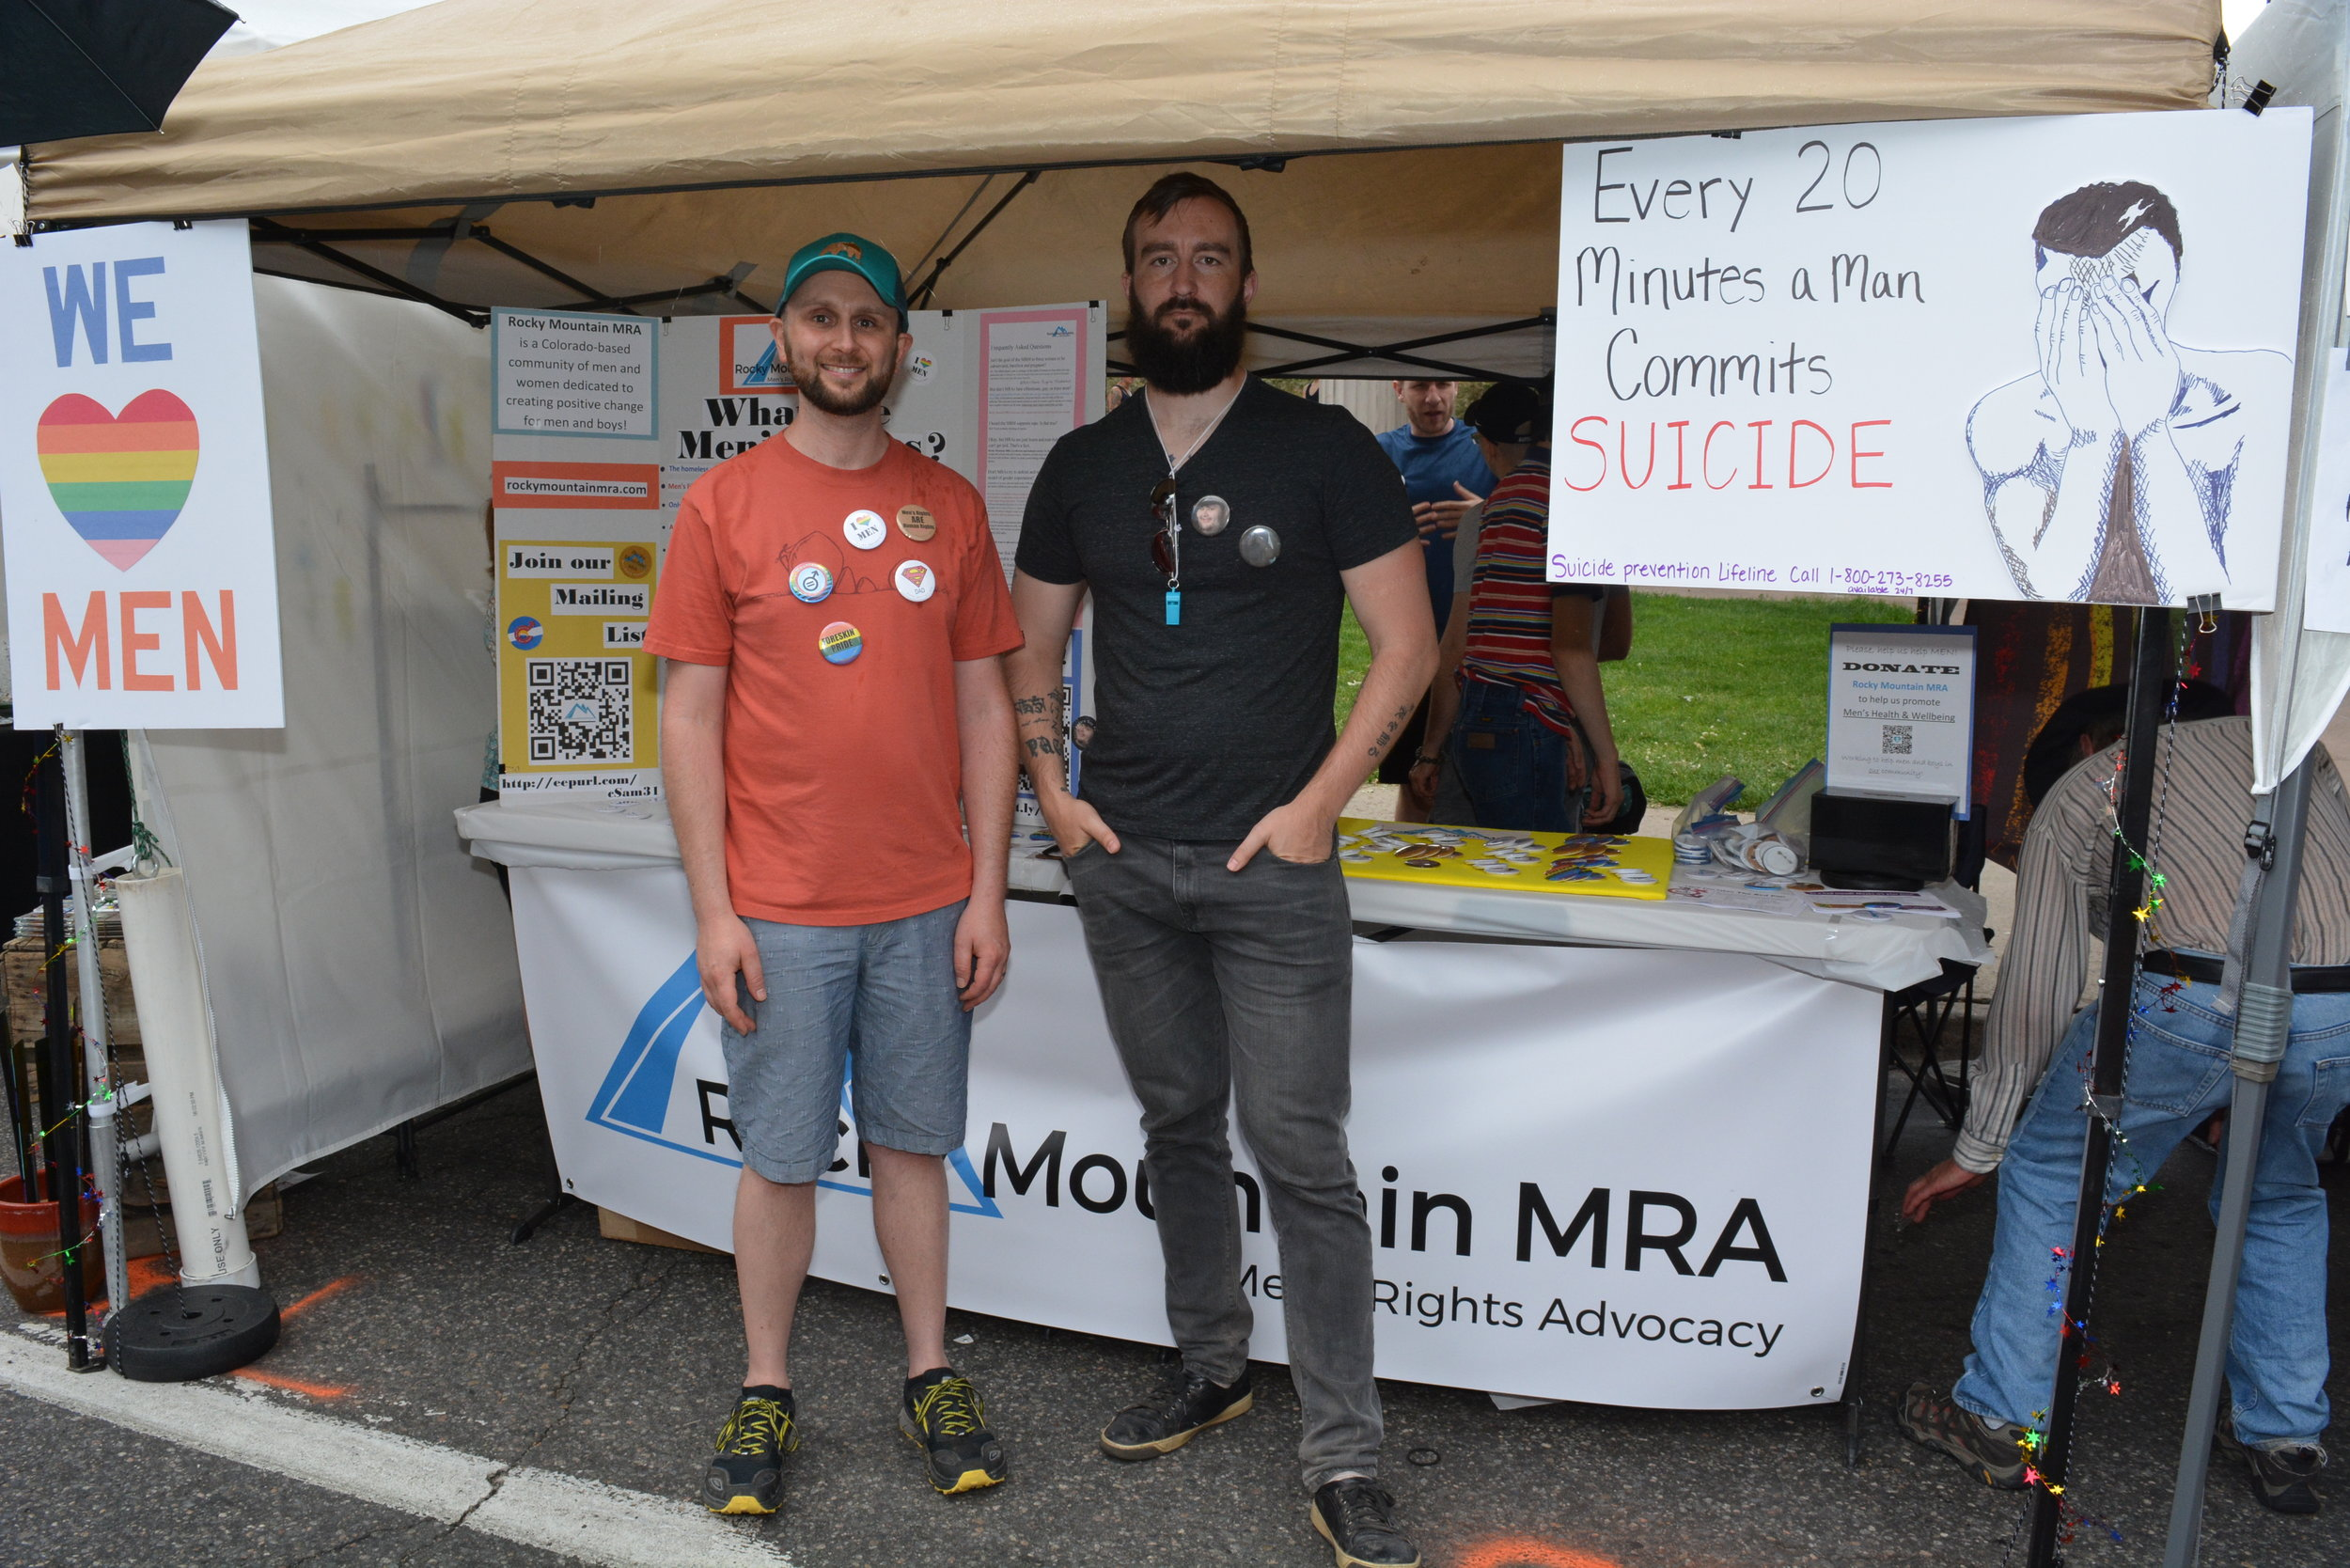 Co-founders of Rocky Mountain MRA,Aaron and Bryan.